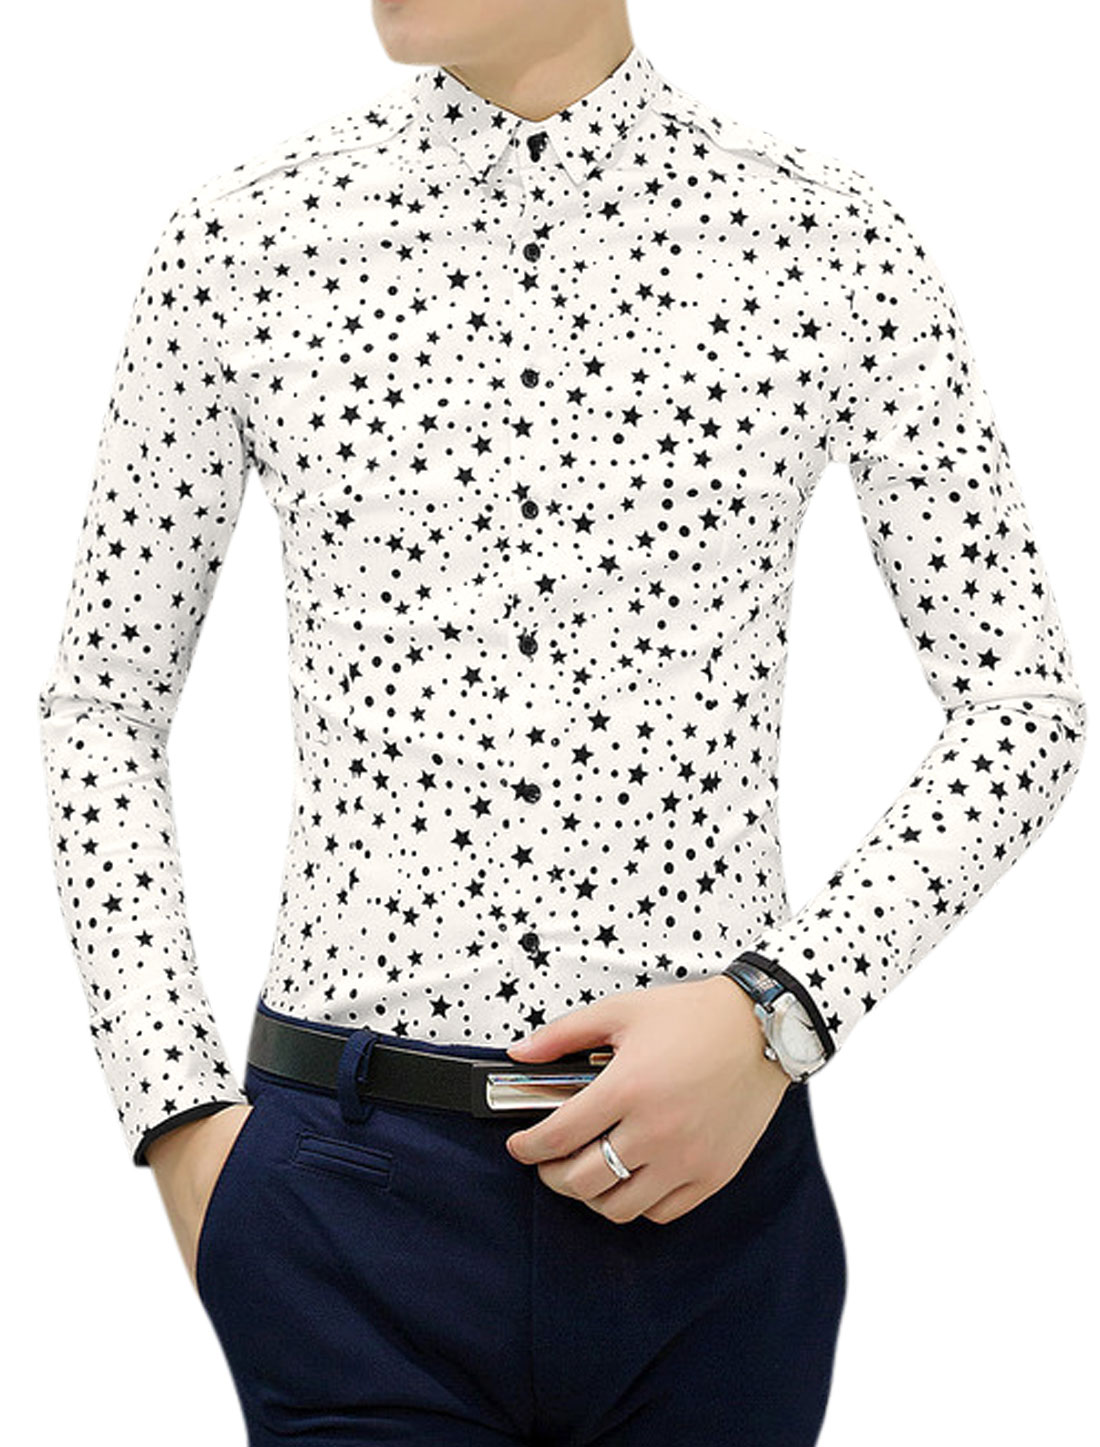 Men Stars Pttern Panel Design Button Down Shirt White S